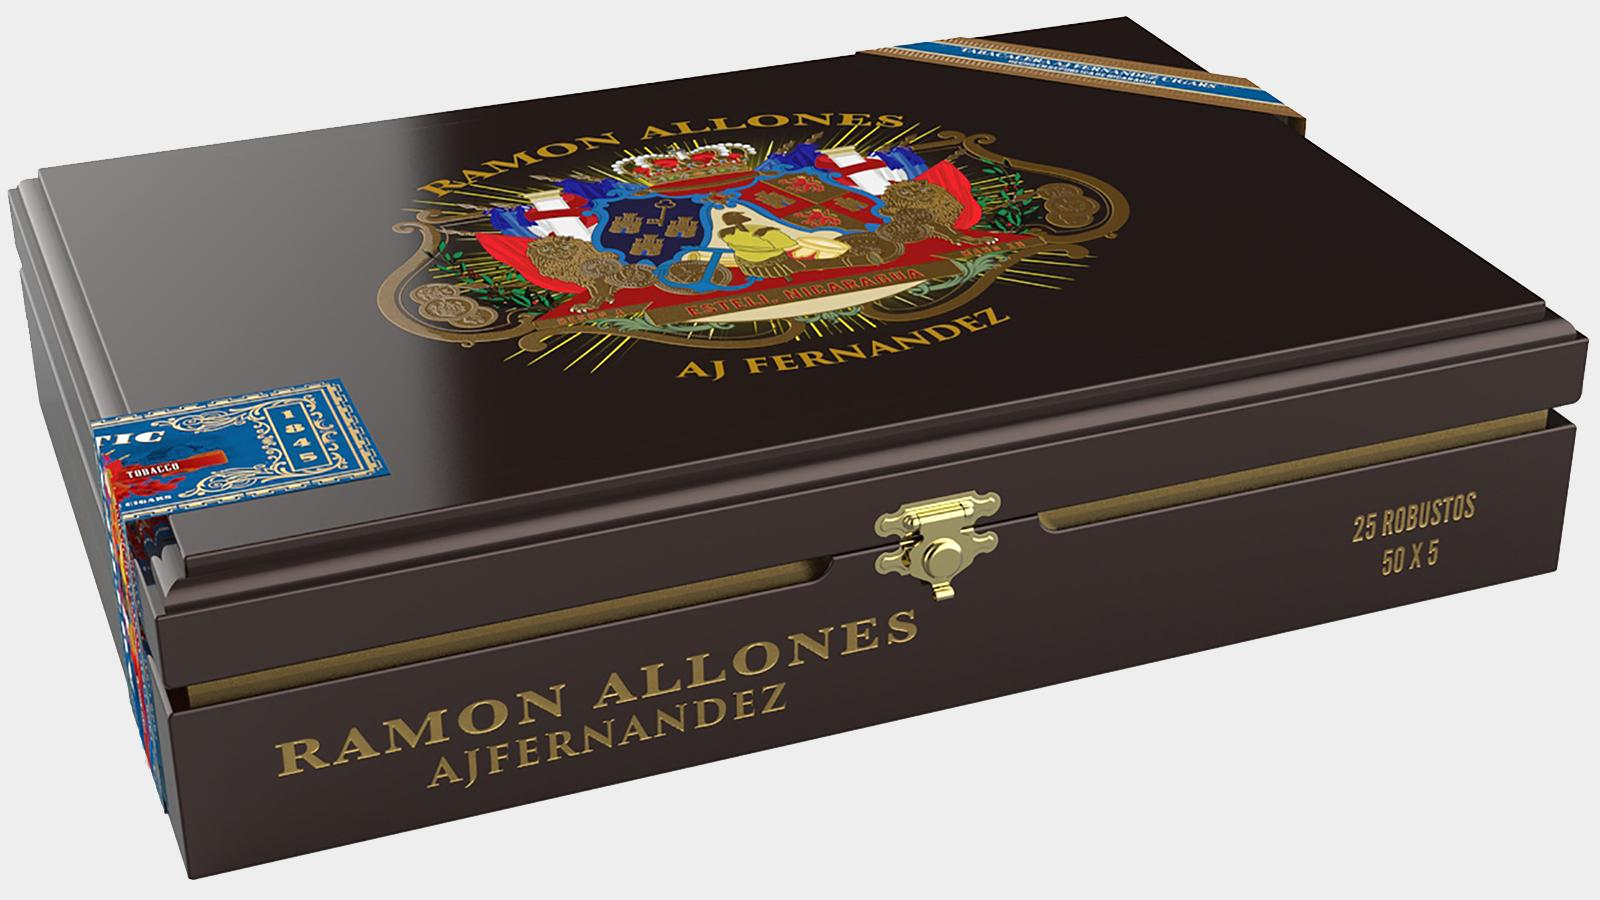 The Ramon Allones cigars are made at the Tabacalera A.J. Fernandez Cigars de Nicaragua factory.